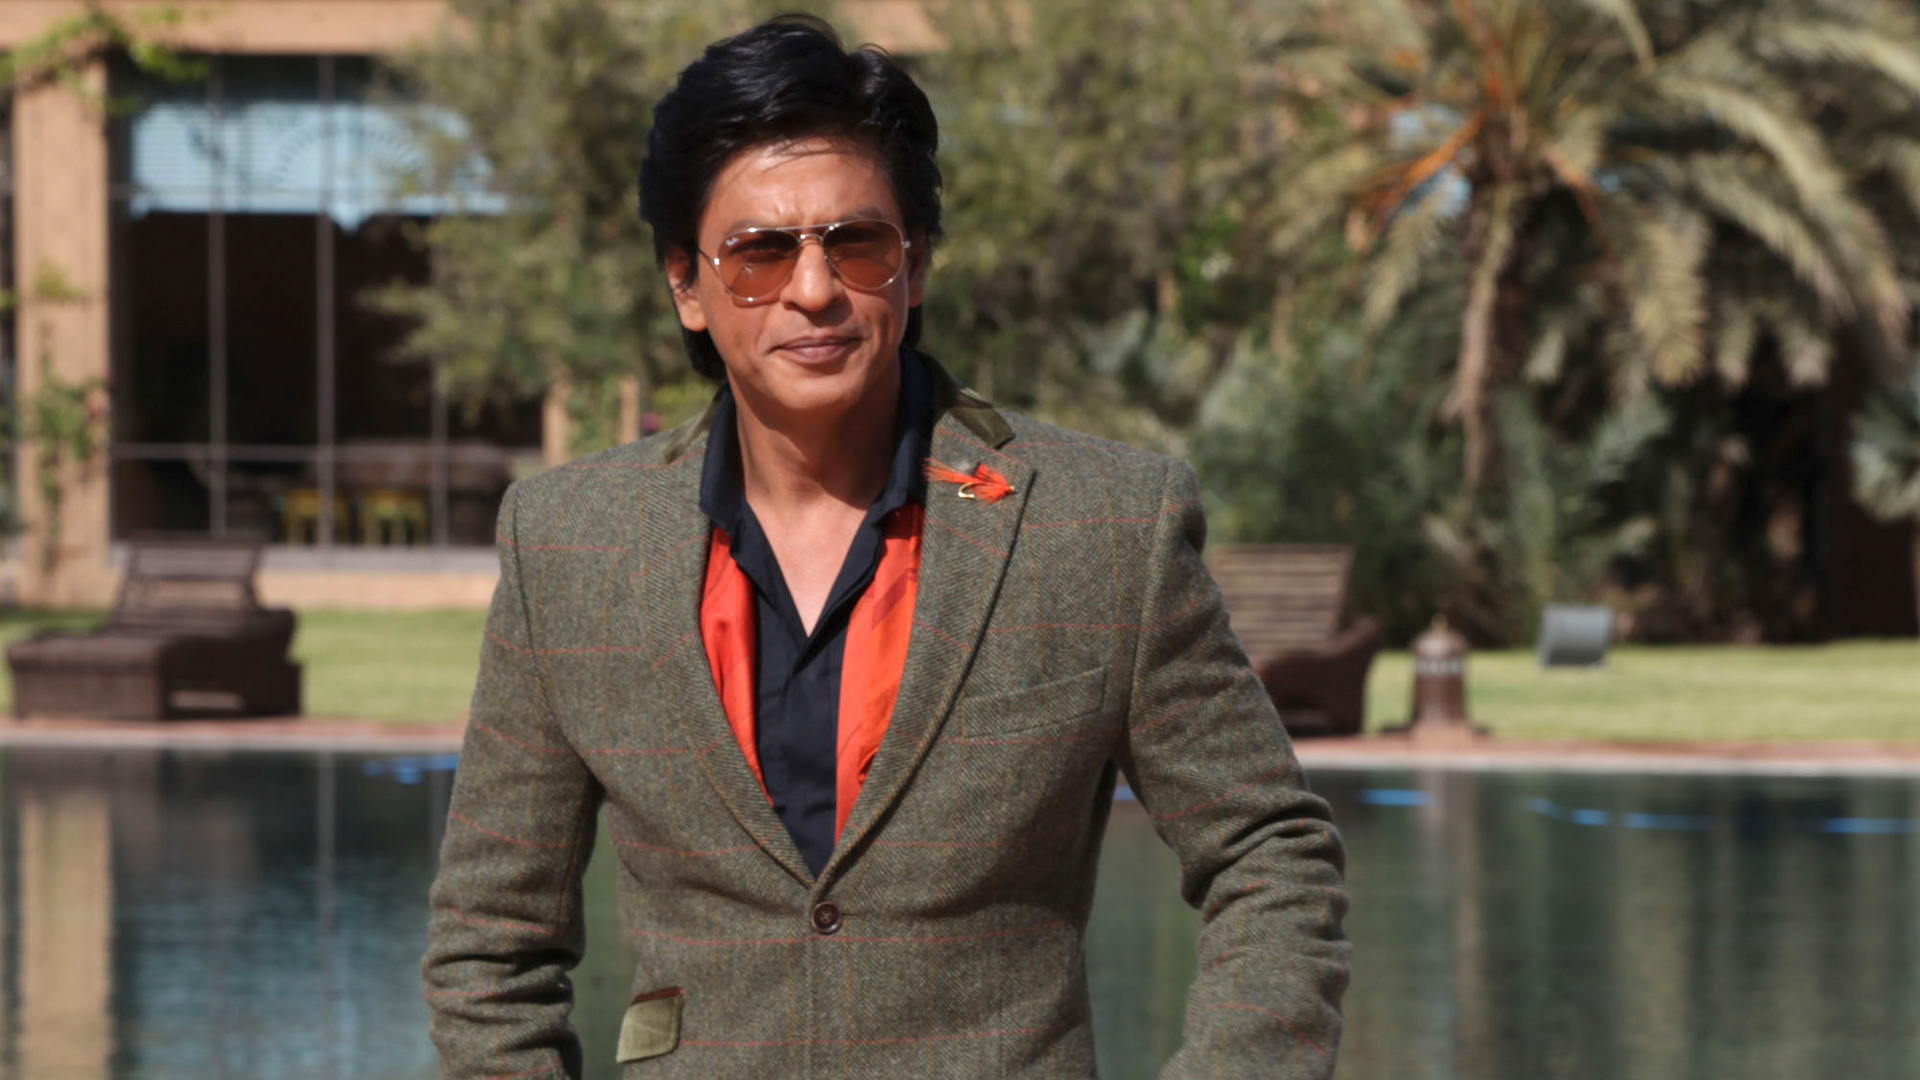 shah rukh khan in sunglasses hd photo | hd wallpapers